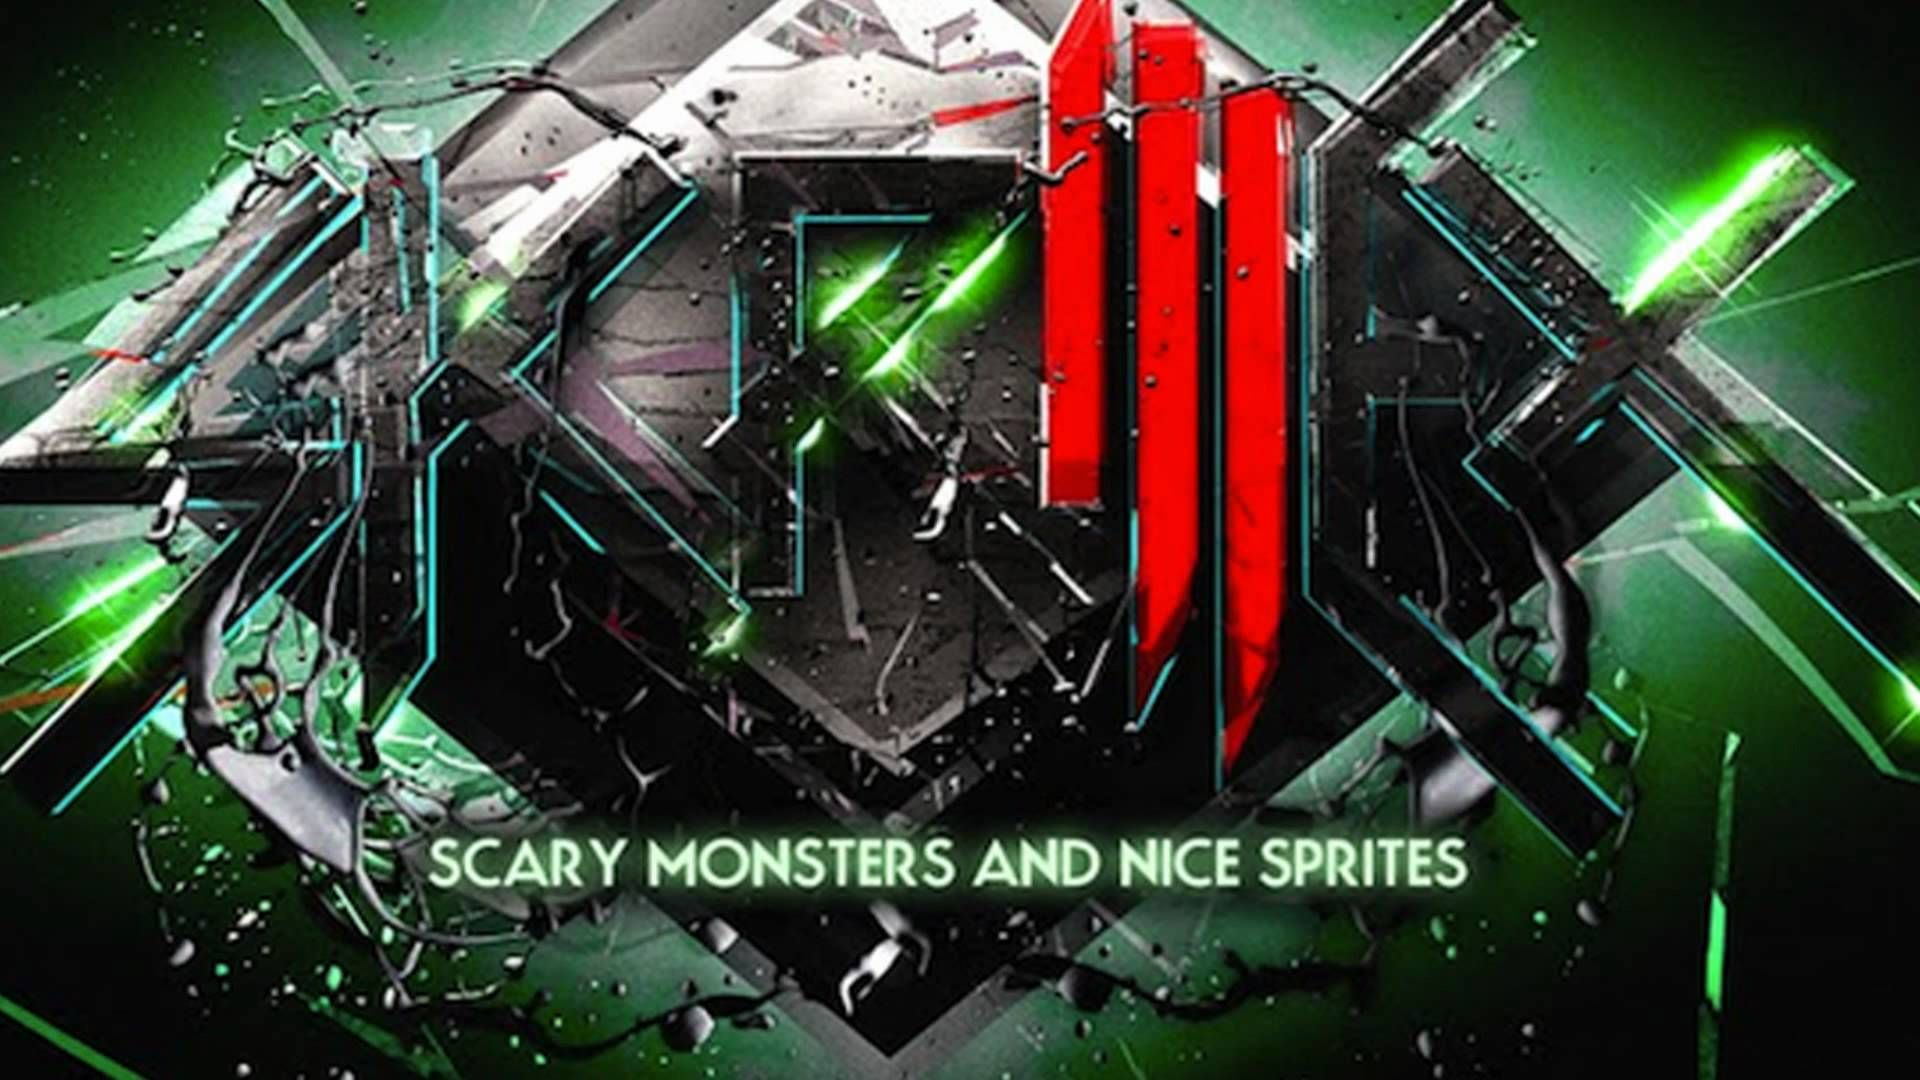 Dancing Astronaut On Twitter The Skrillex Era Officially Started 8 Years Ago Today As We Throw It Back To 2010 For The Birthday Of His Debut Ep Scary Monsters And Nice Sprites